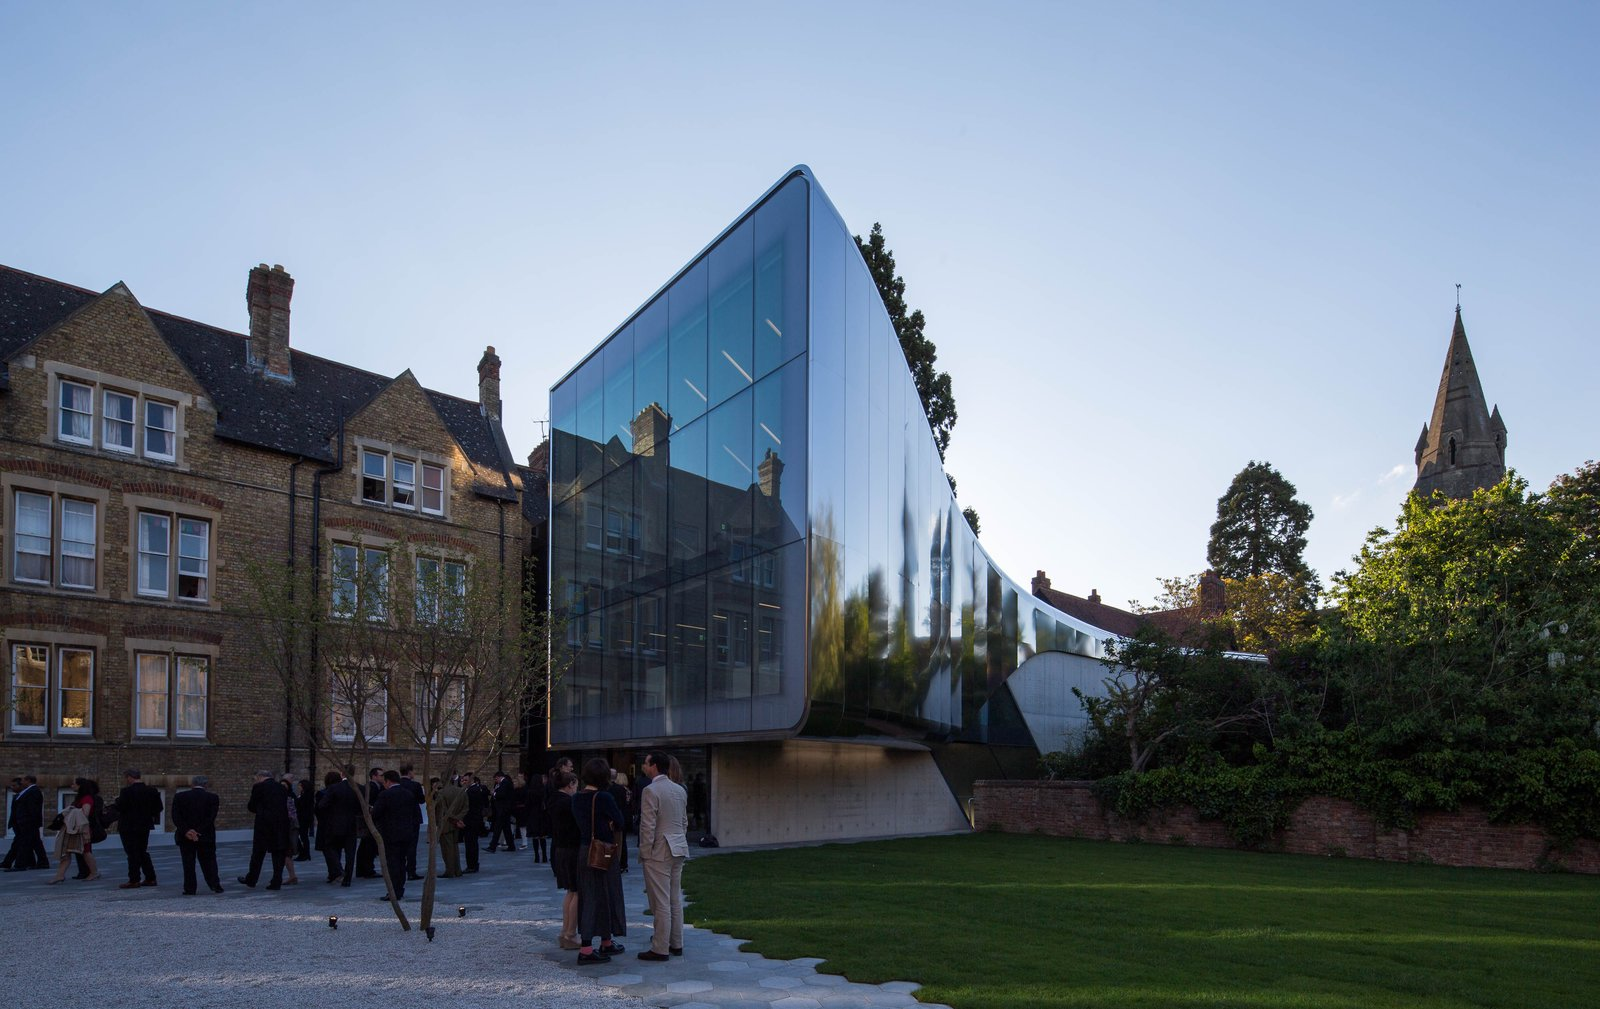 """The Investcorp Building integrates new academic and research facilities within a design defined by the existing built and natural environment of the college. The project maintains the detached character of the college's current buildings, allowing them to be read as separate elements, while introducing a contemporary building that conveys the past, present and future evolution of the college, university and city. Tagged: Exterior and Glass Siding Material.  Photo 16 of 18 in """"Queen of the Curve"""": 18 Influential Works by Zaha Hadid"""